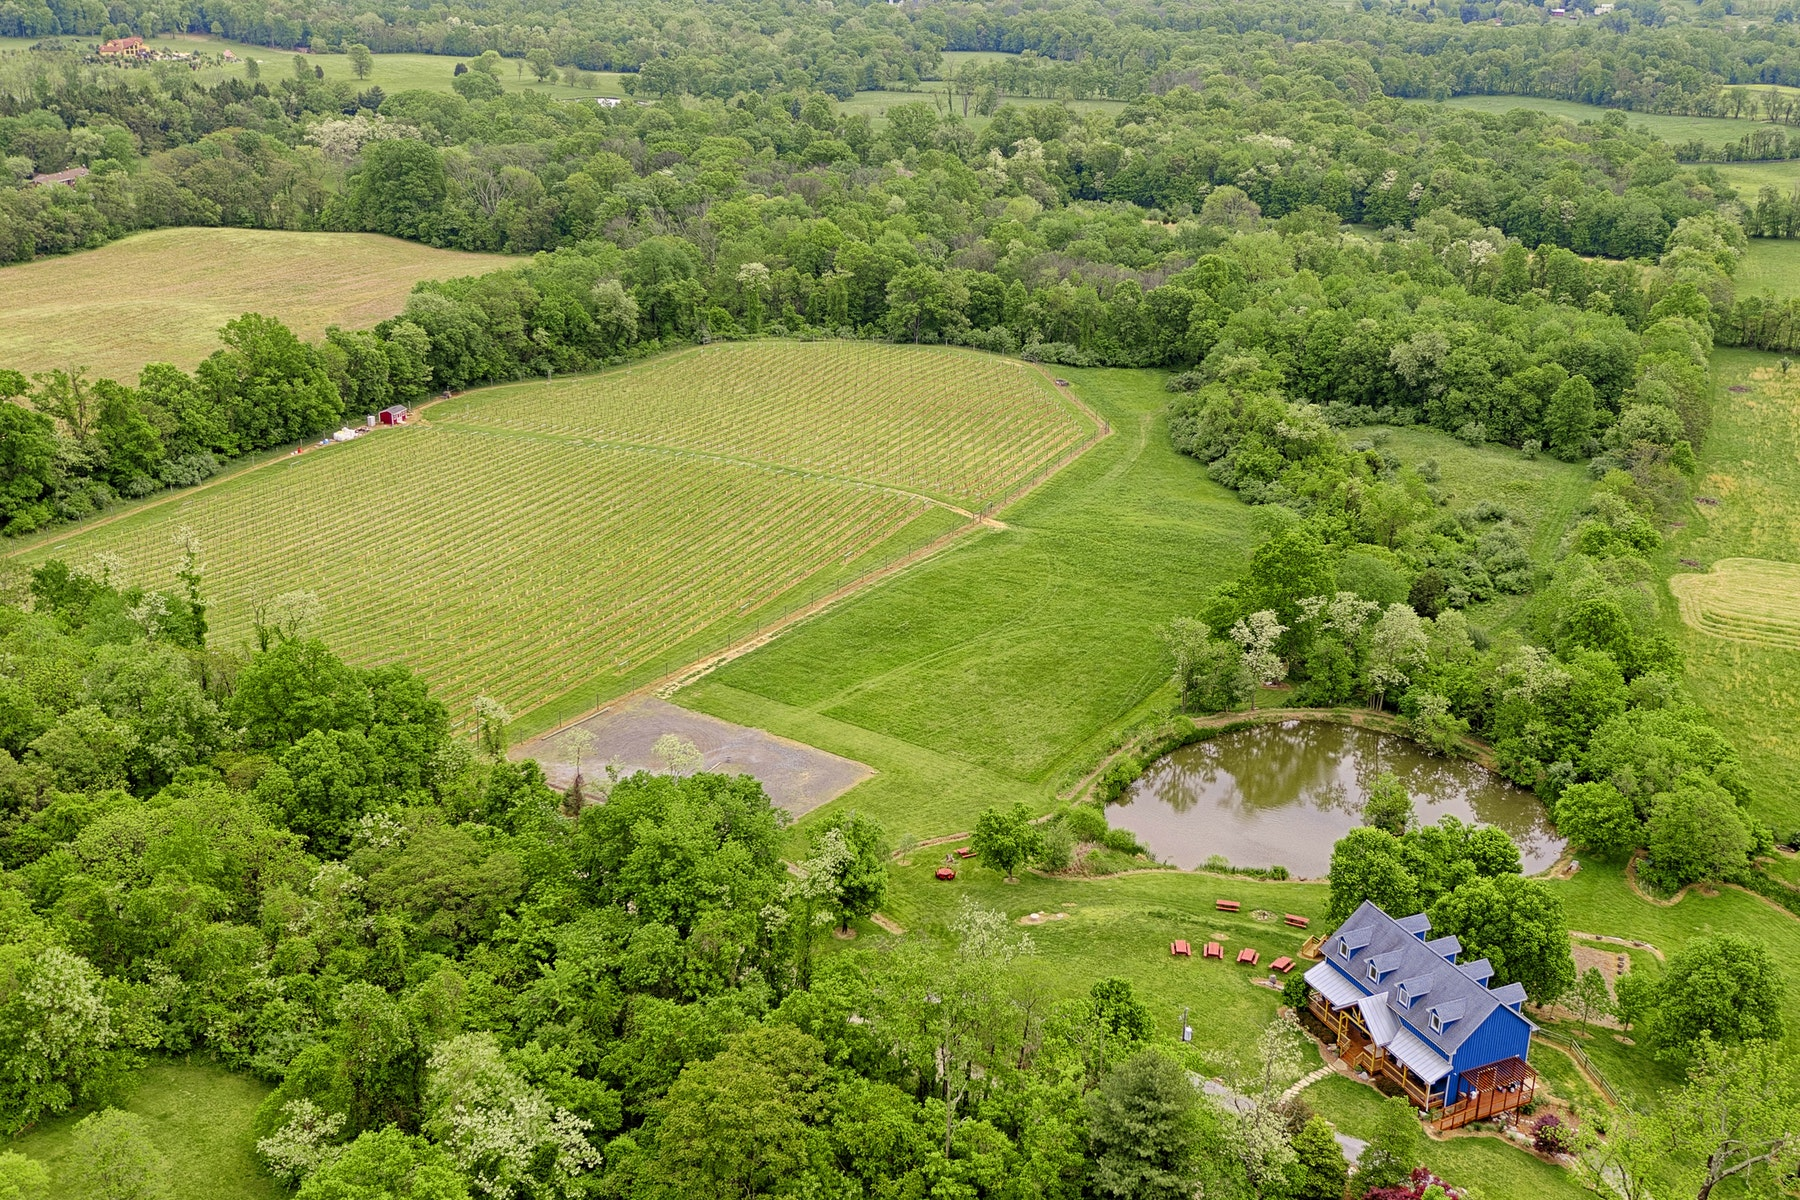 Single Family Home for Sale at Notaviva Vineyard 13274 Sagle Road Purcellville, Virginia 20132 United States